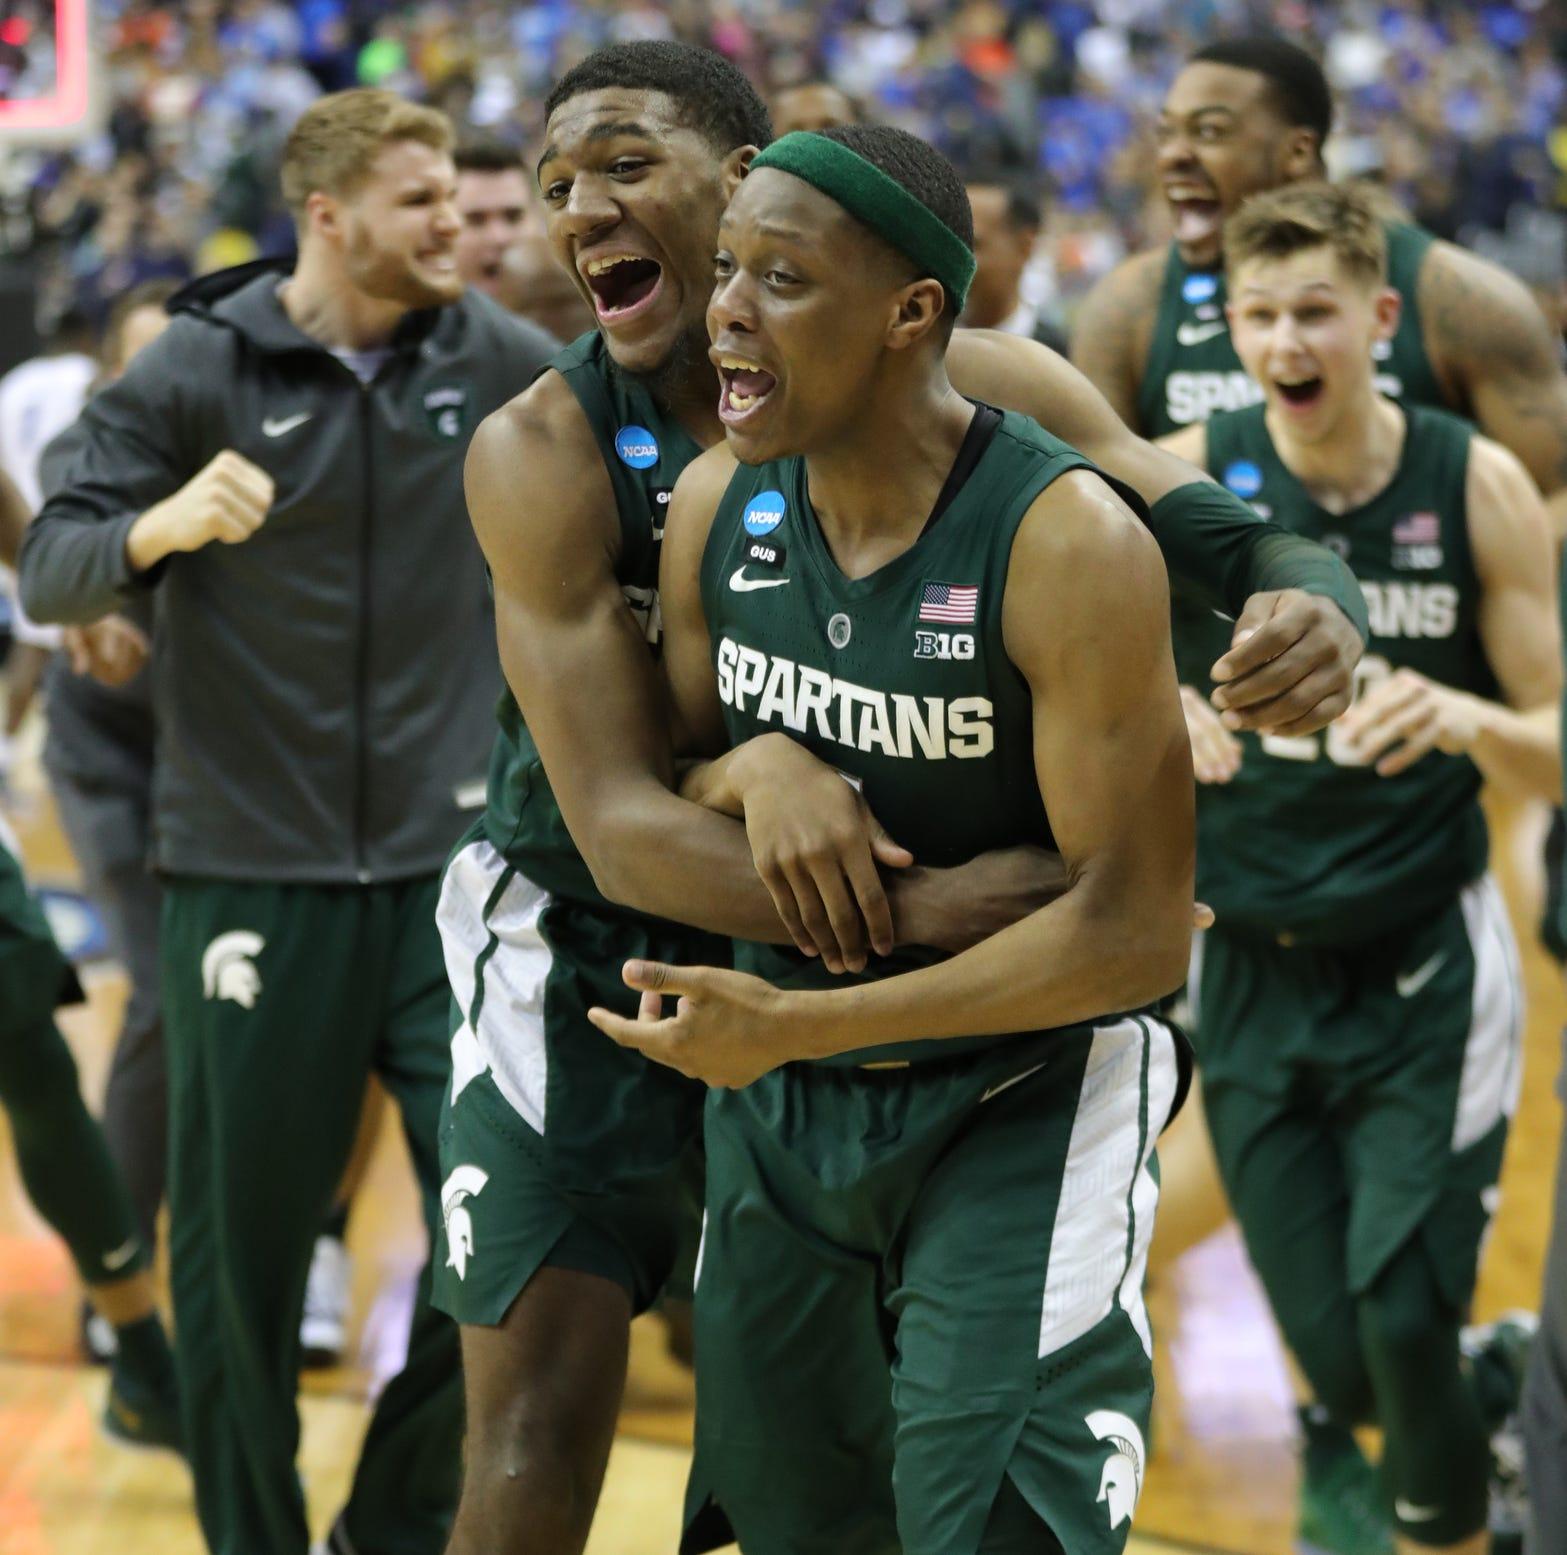 MSU in Final Four 2019: What you'll pay for tickets, hotels, travel to Minneapolis